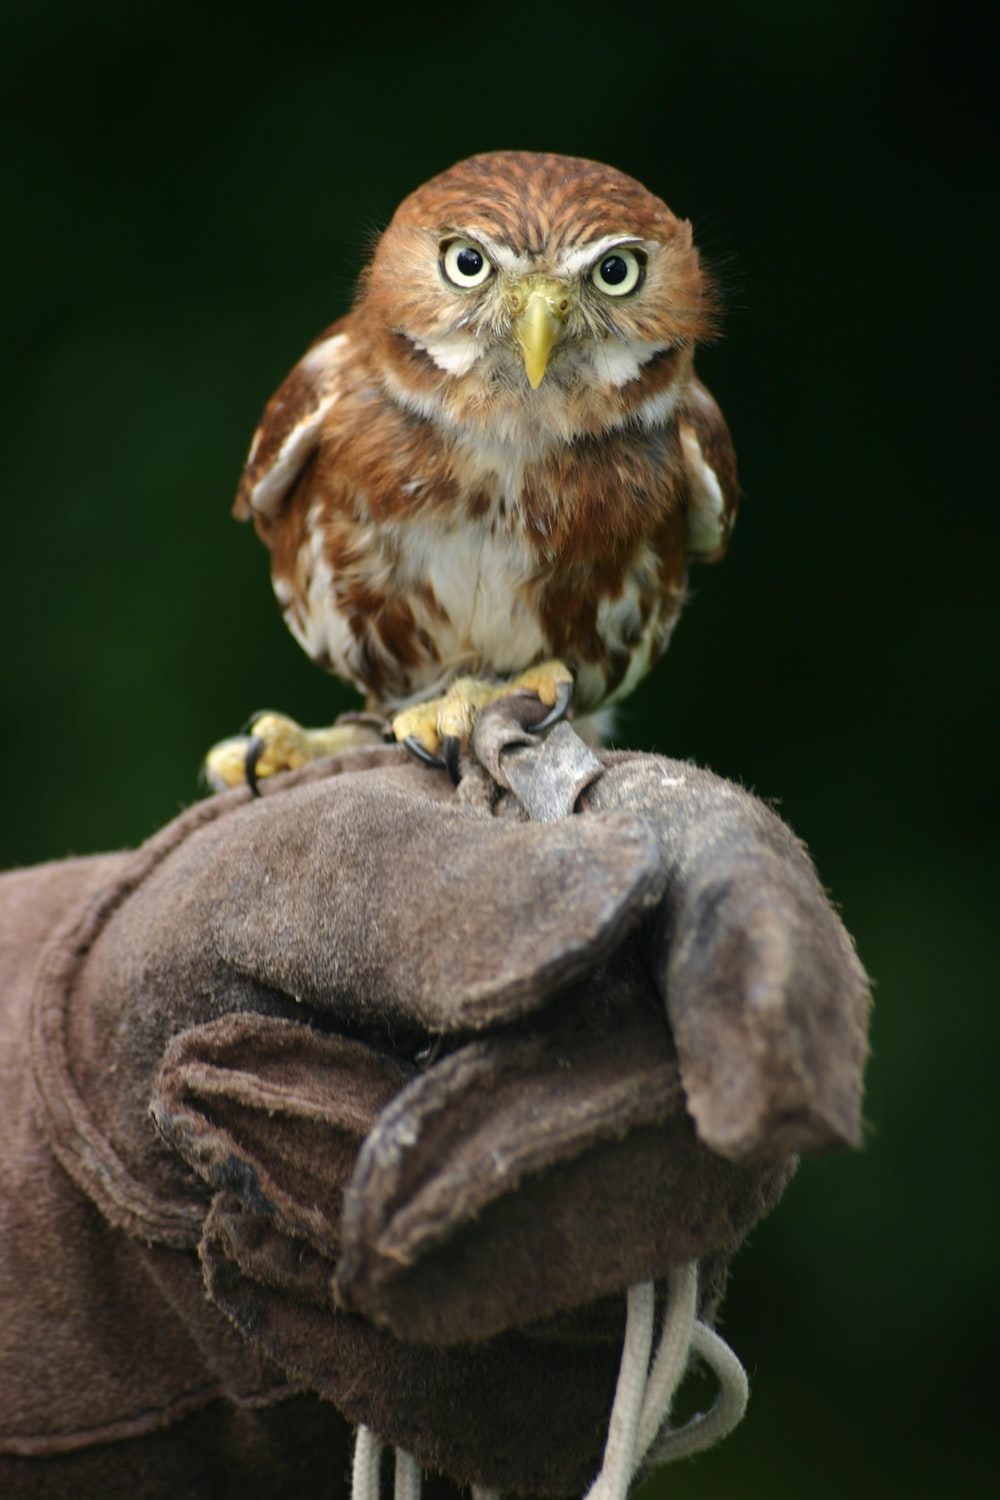 close shot of brown and white owl